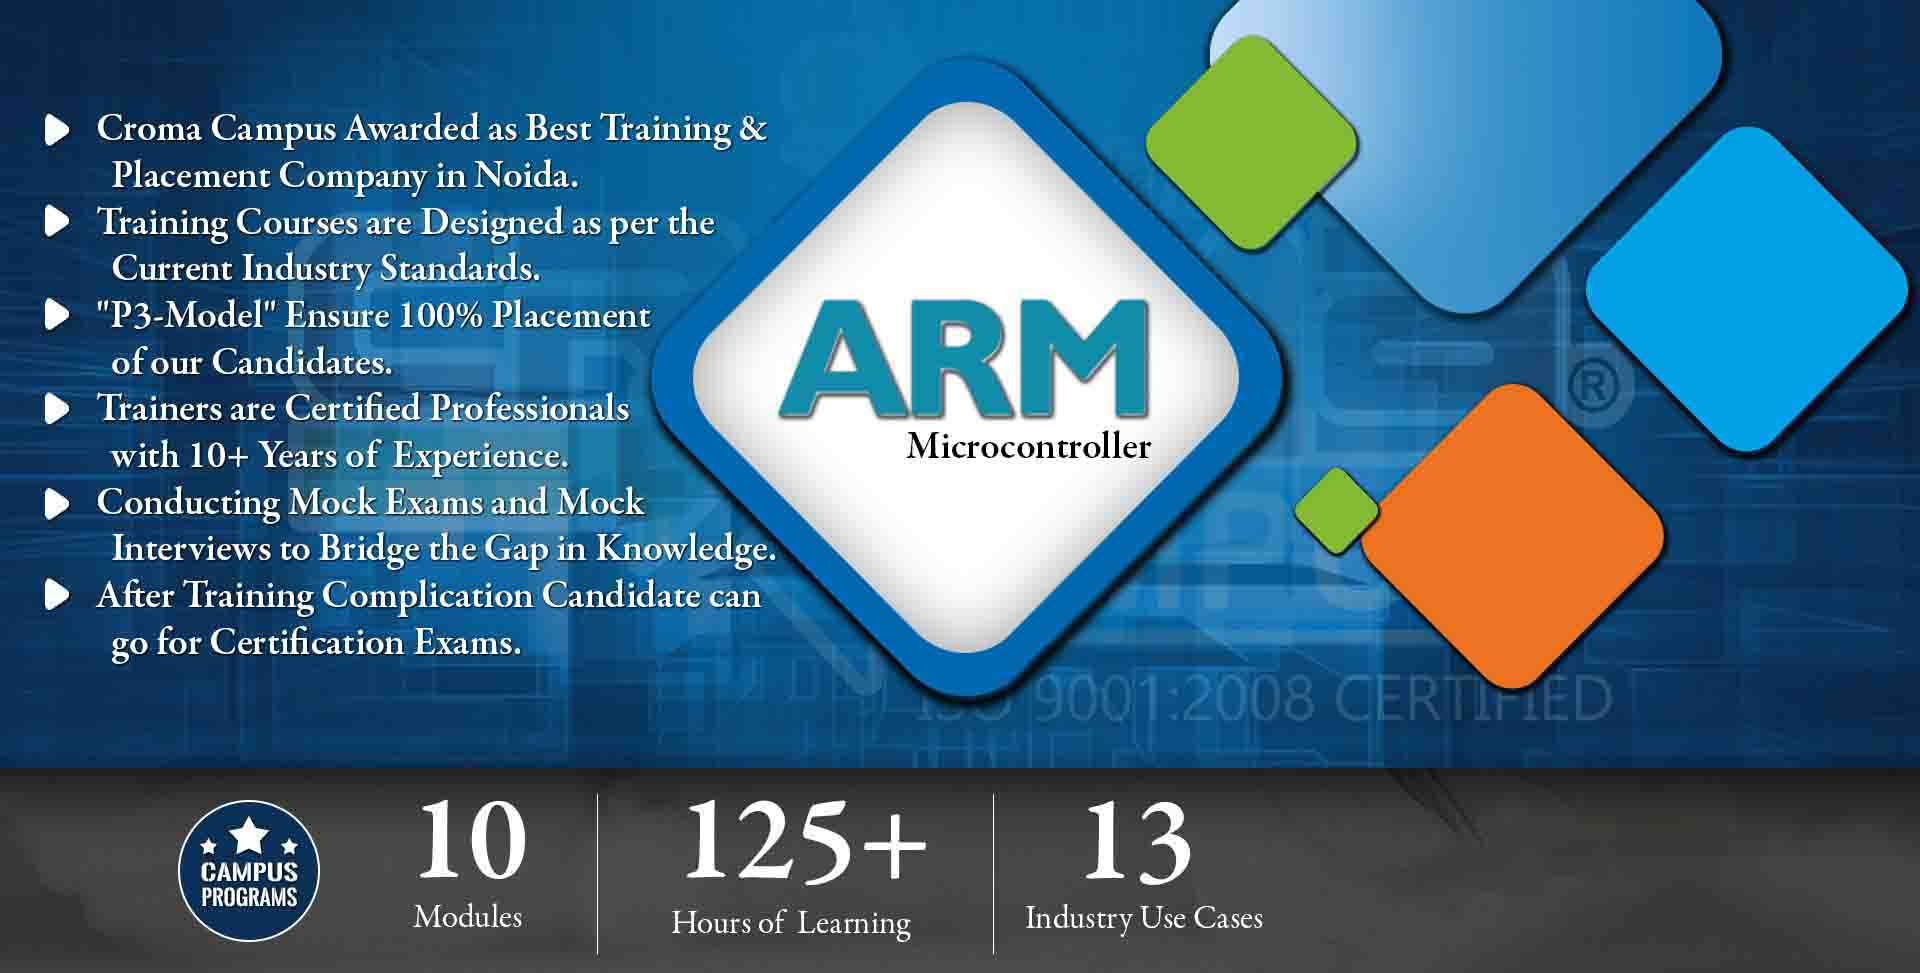 ARM Microcontroller Training in Delhi NCR- Croma Campus